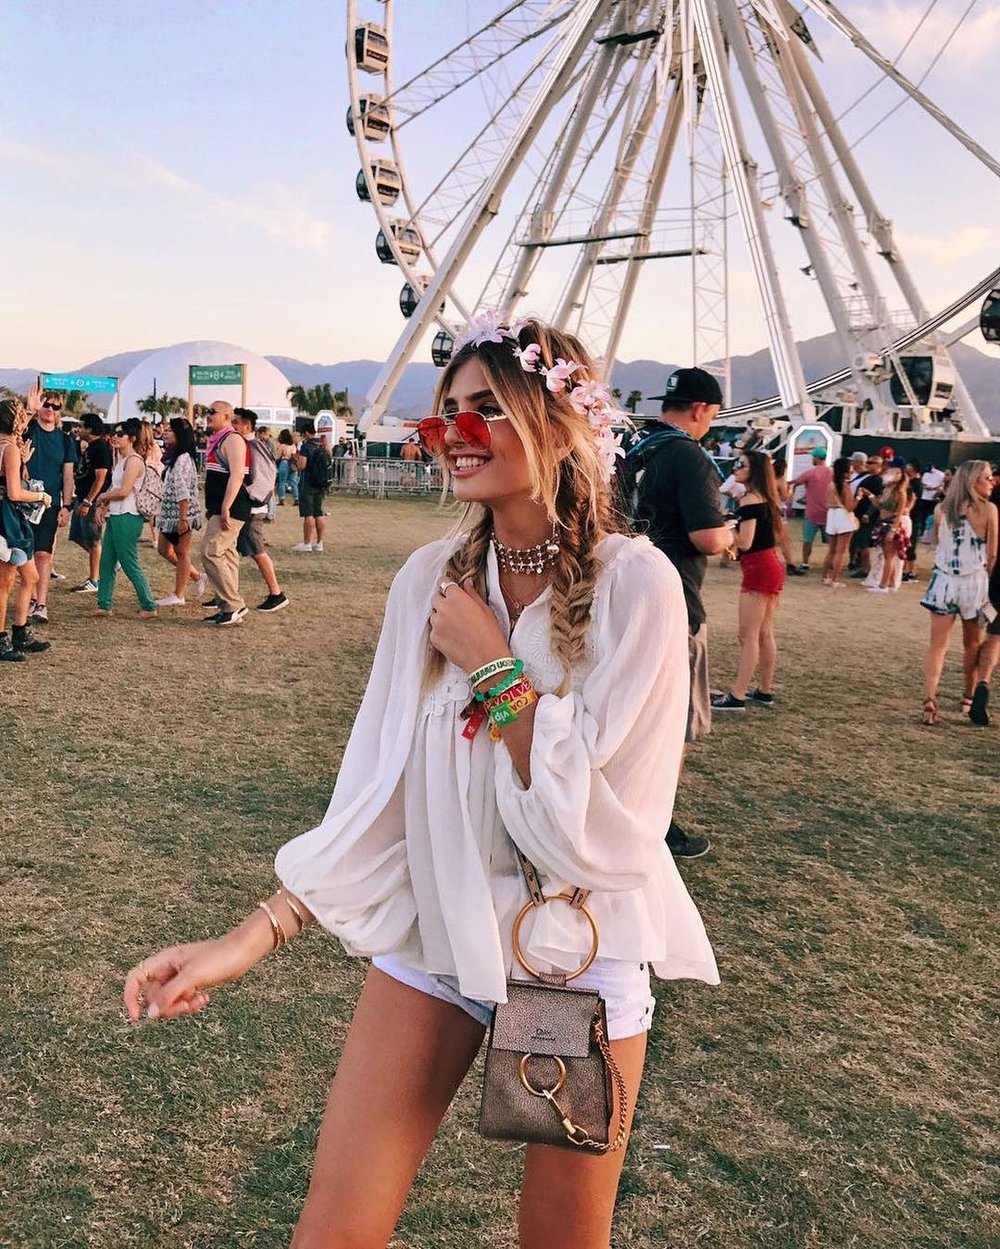 Xenia Van Der Woodsen at Coachella. I love her look!